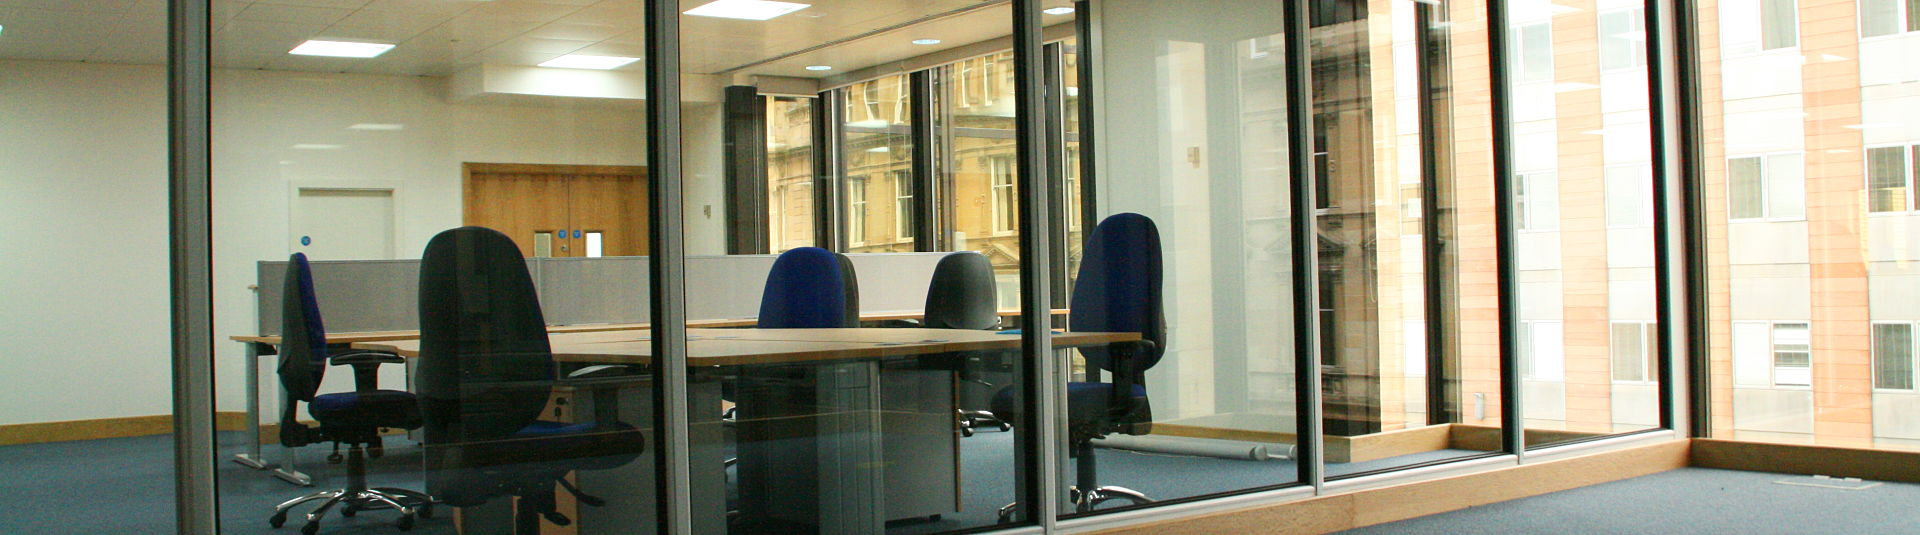 datum fitout office glazed partitioning glasgow